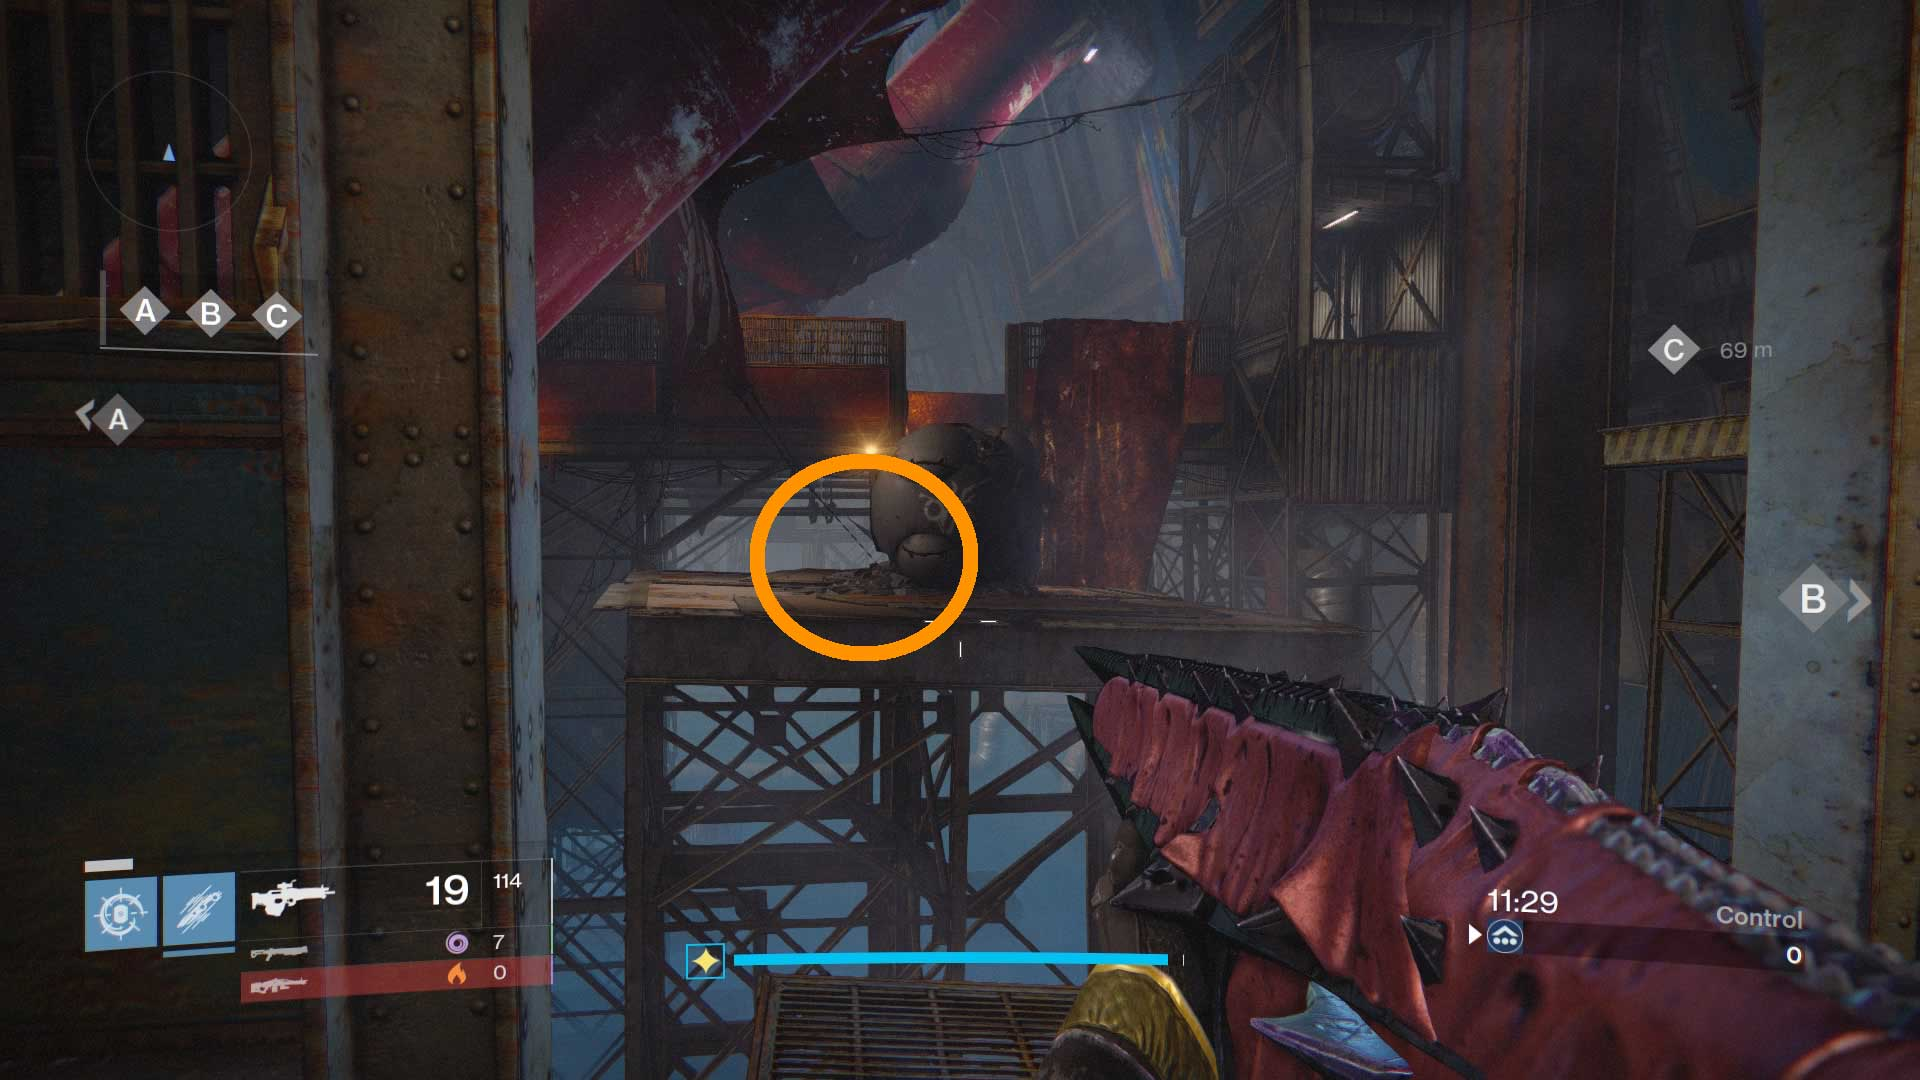 destiny_rise_of_iron_new_crucible_map_dead_ghosts_locations_visual_guide_sector_618_1